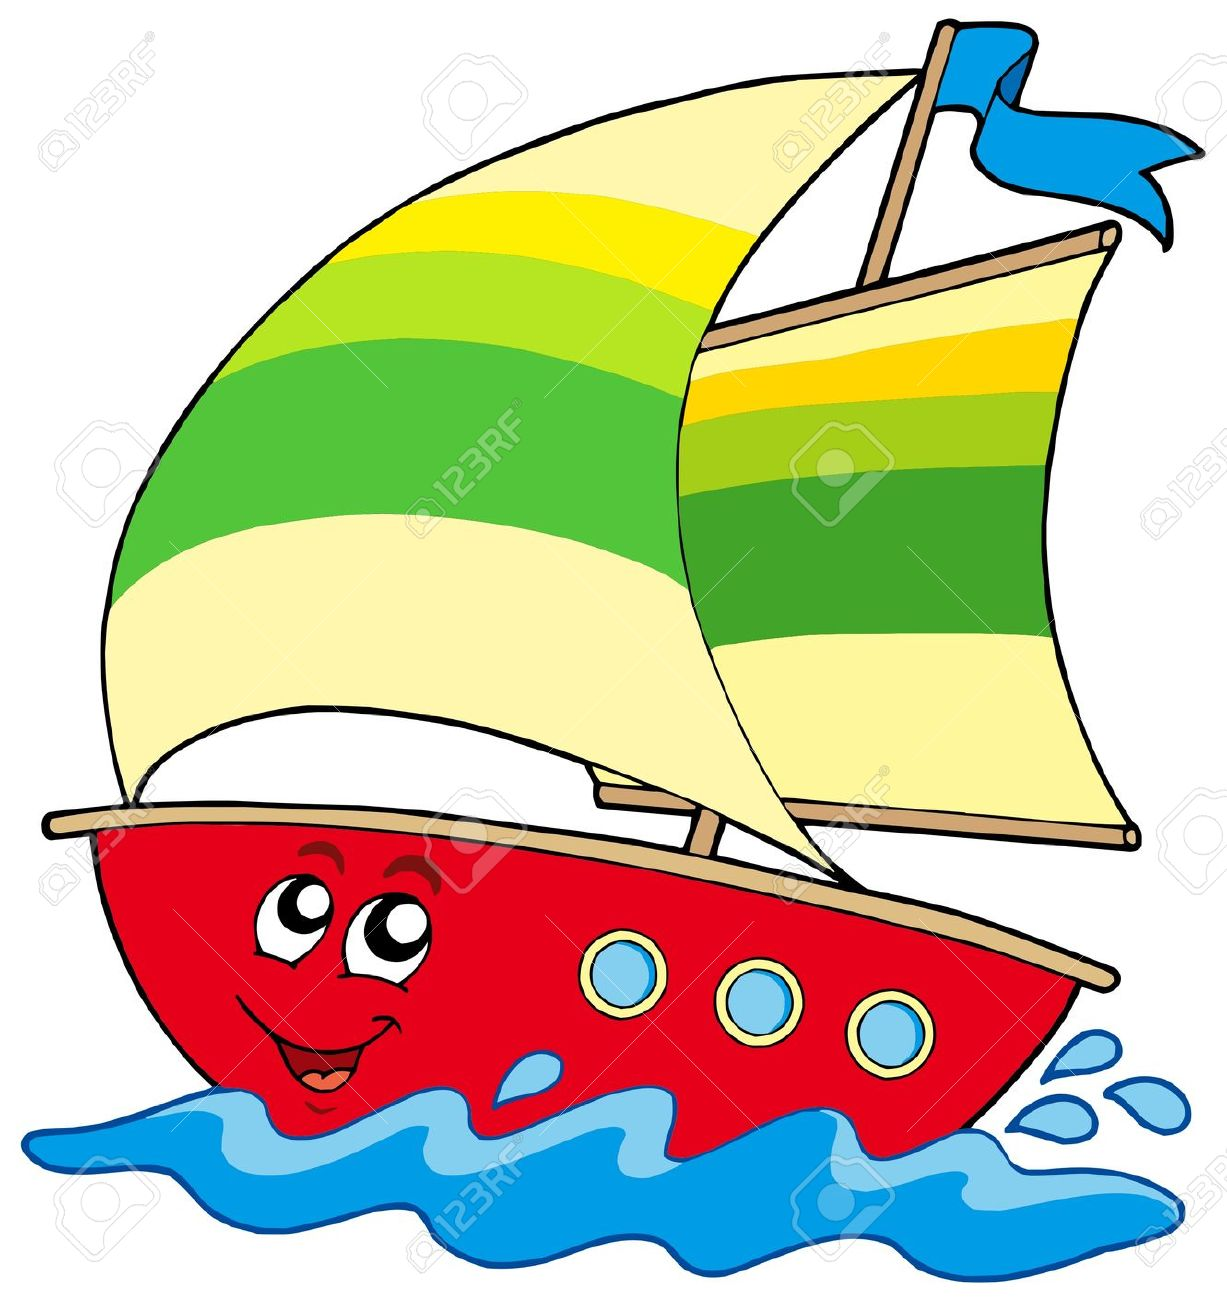 Sail clipart yatch. Yacht at getdrawings com